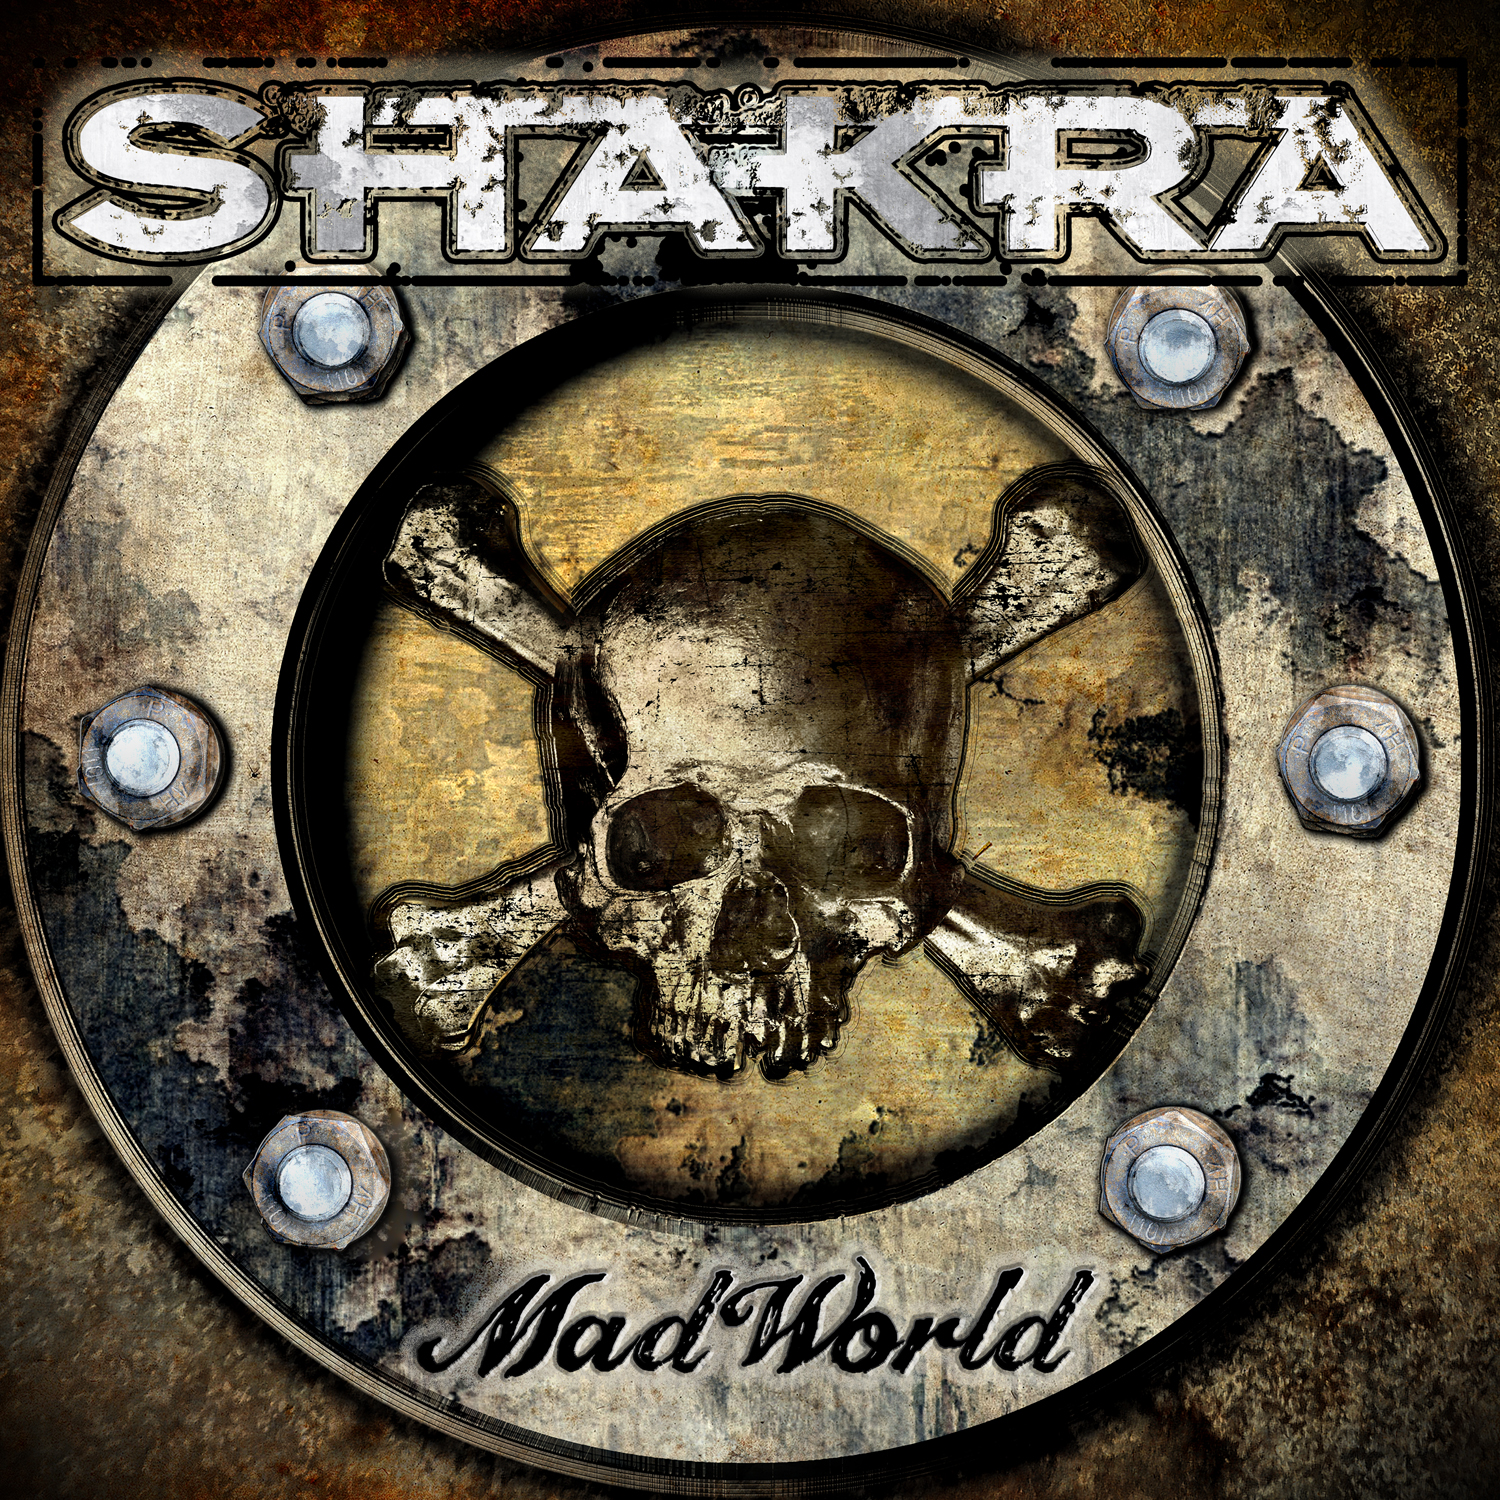 shakra-rock-album-mad-world-zum-25-jahre-jubilaeum-review